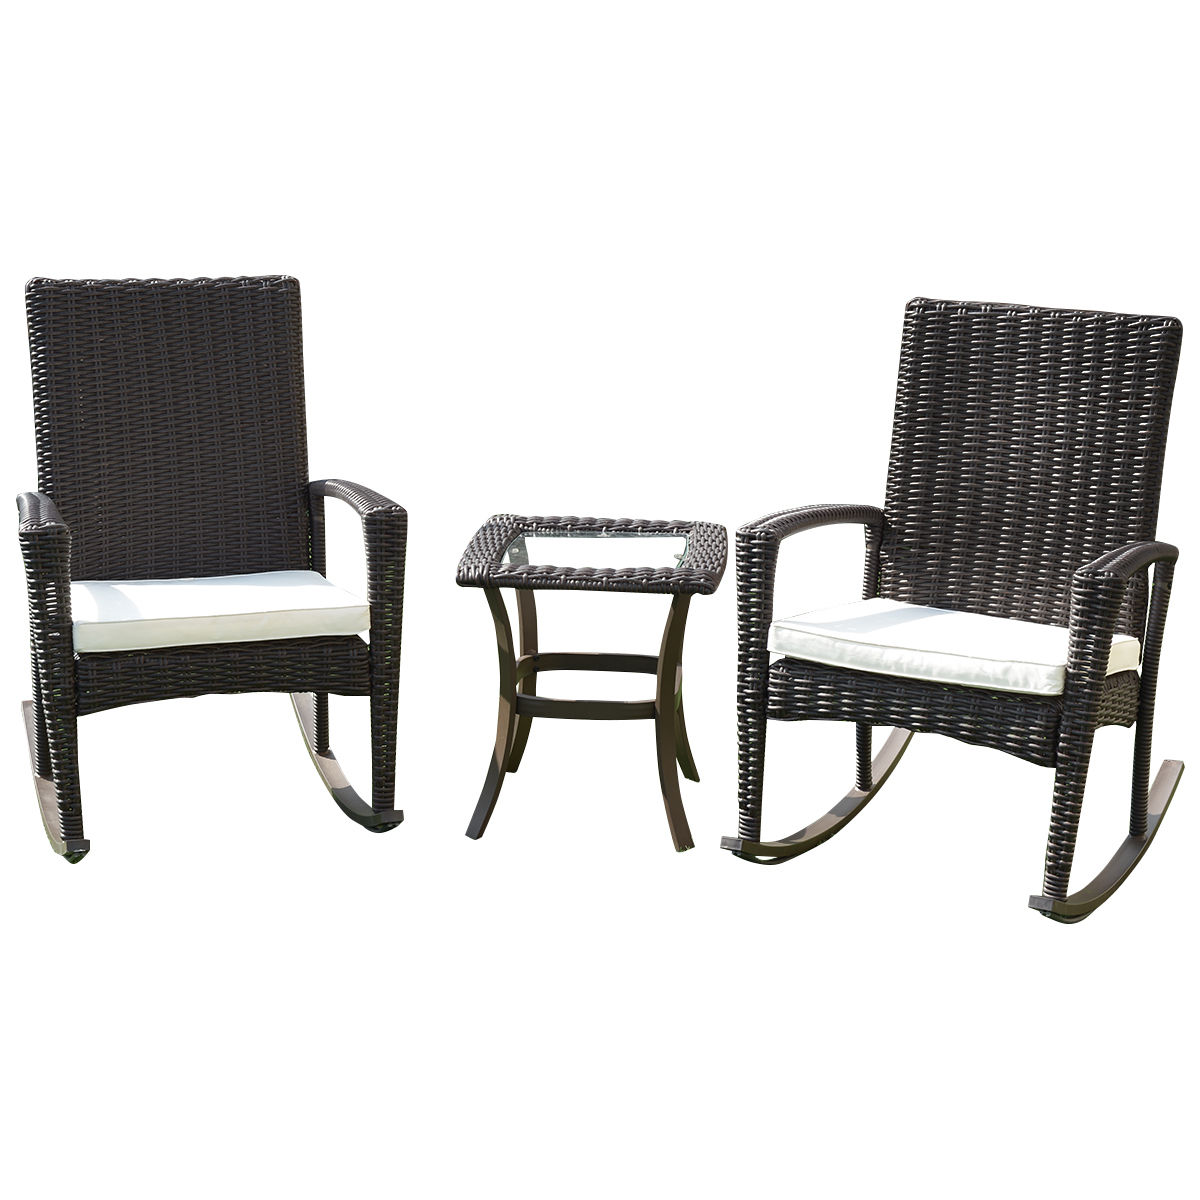 Gymax 3 Piece Rattan Wicker Furniture Set Cushioned Patio Garden Outdoor by Gymax